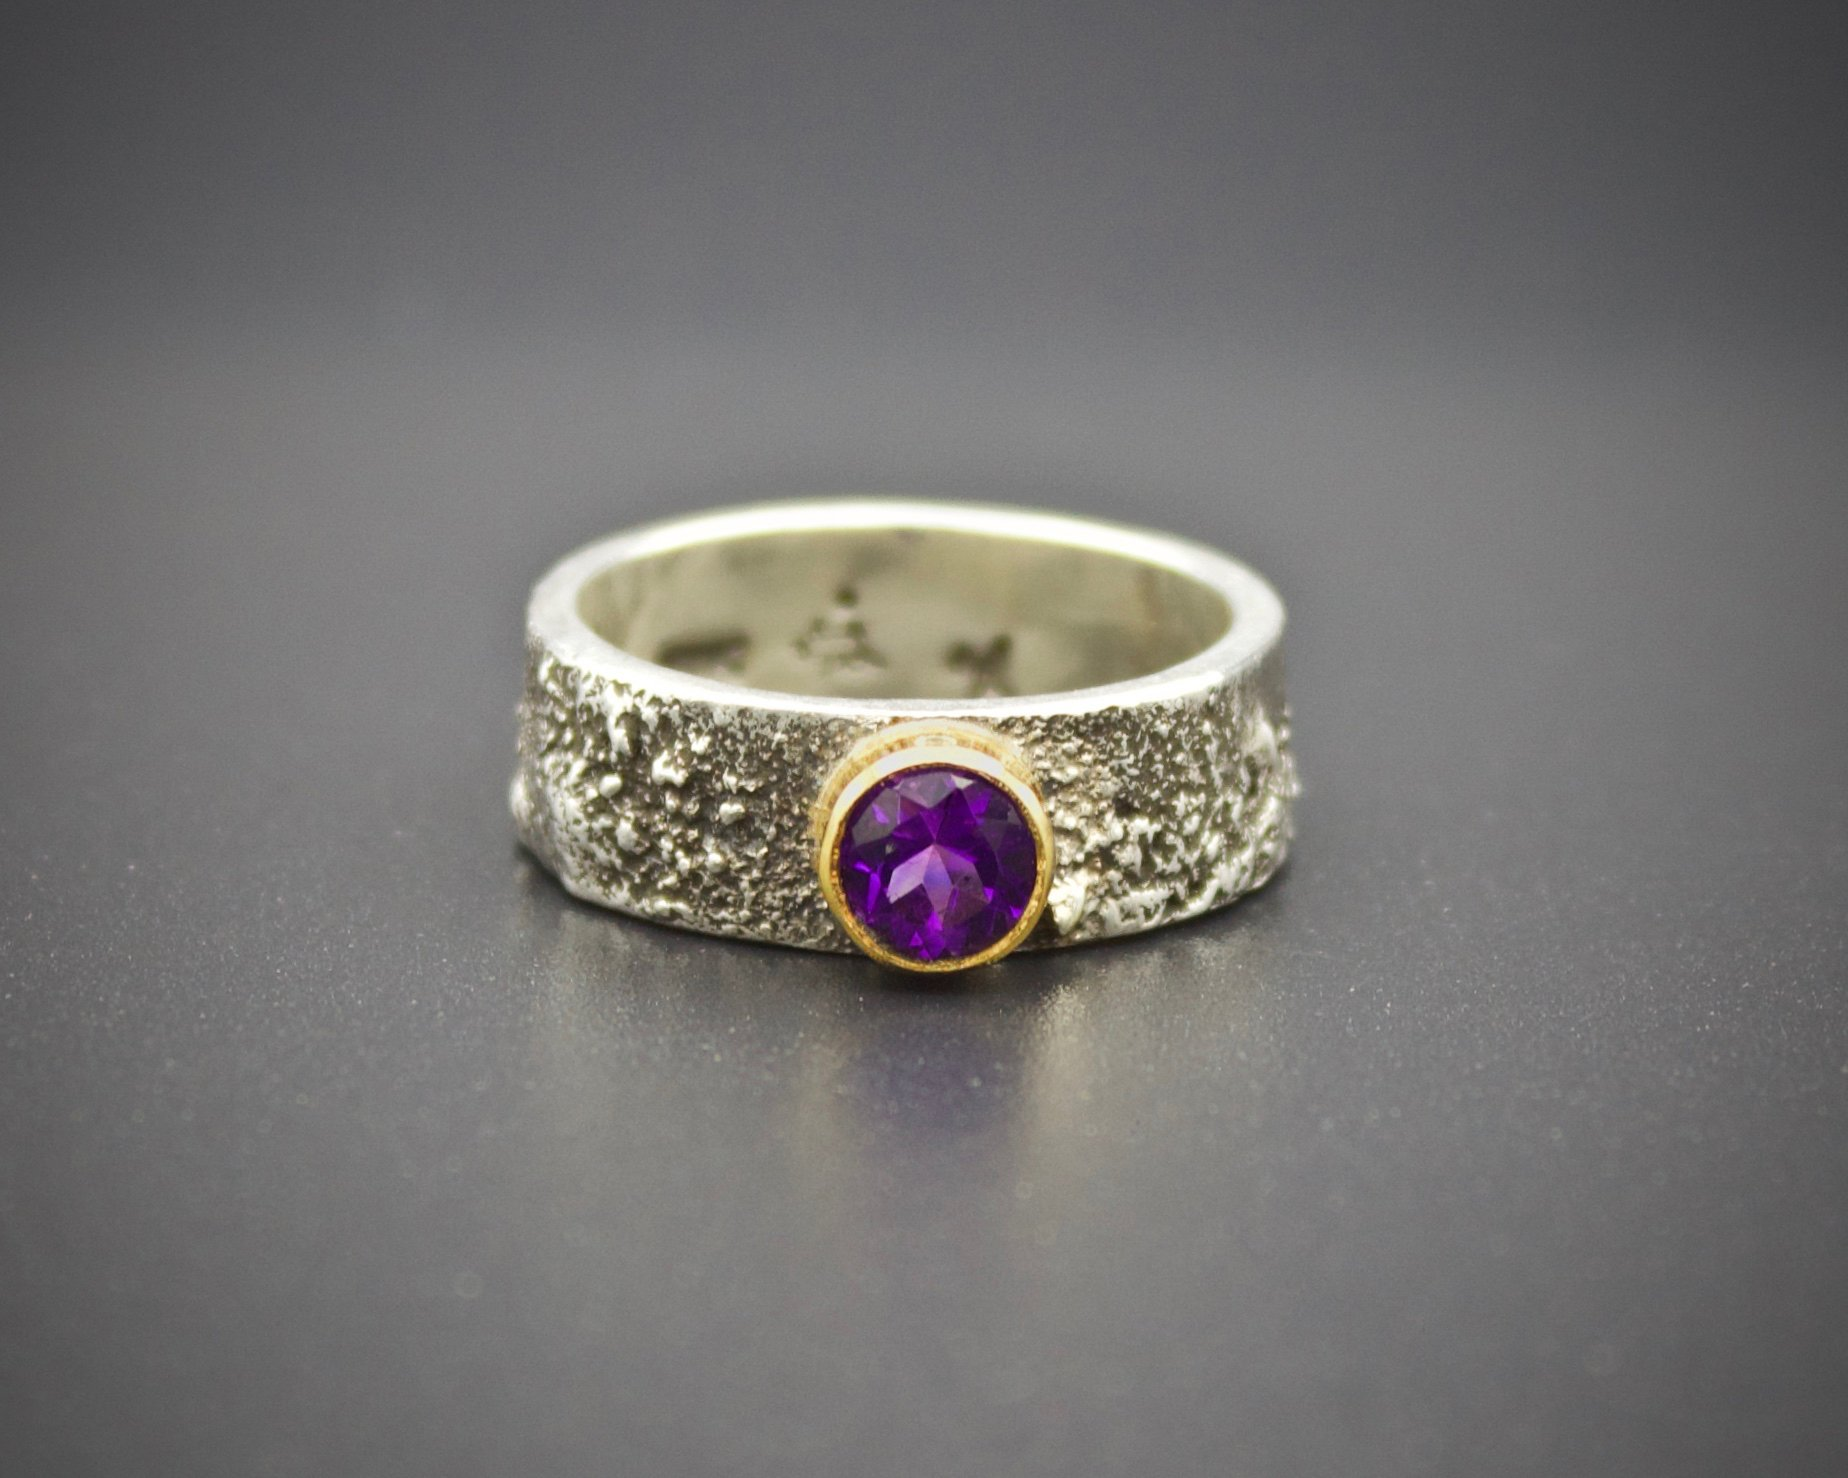 Moondust in Argentium Ring with Amethyst by Forge & Fountain